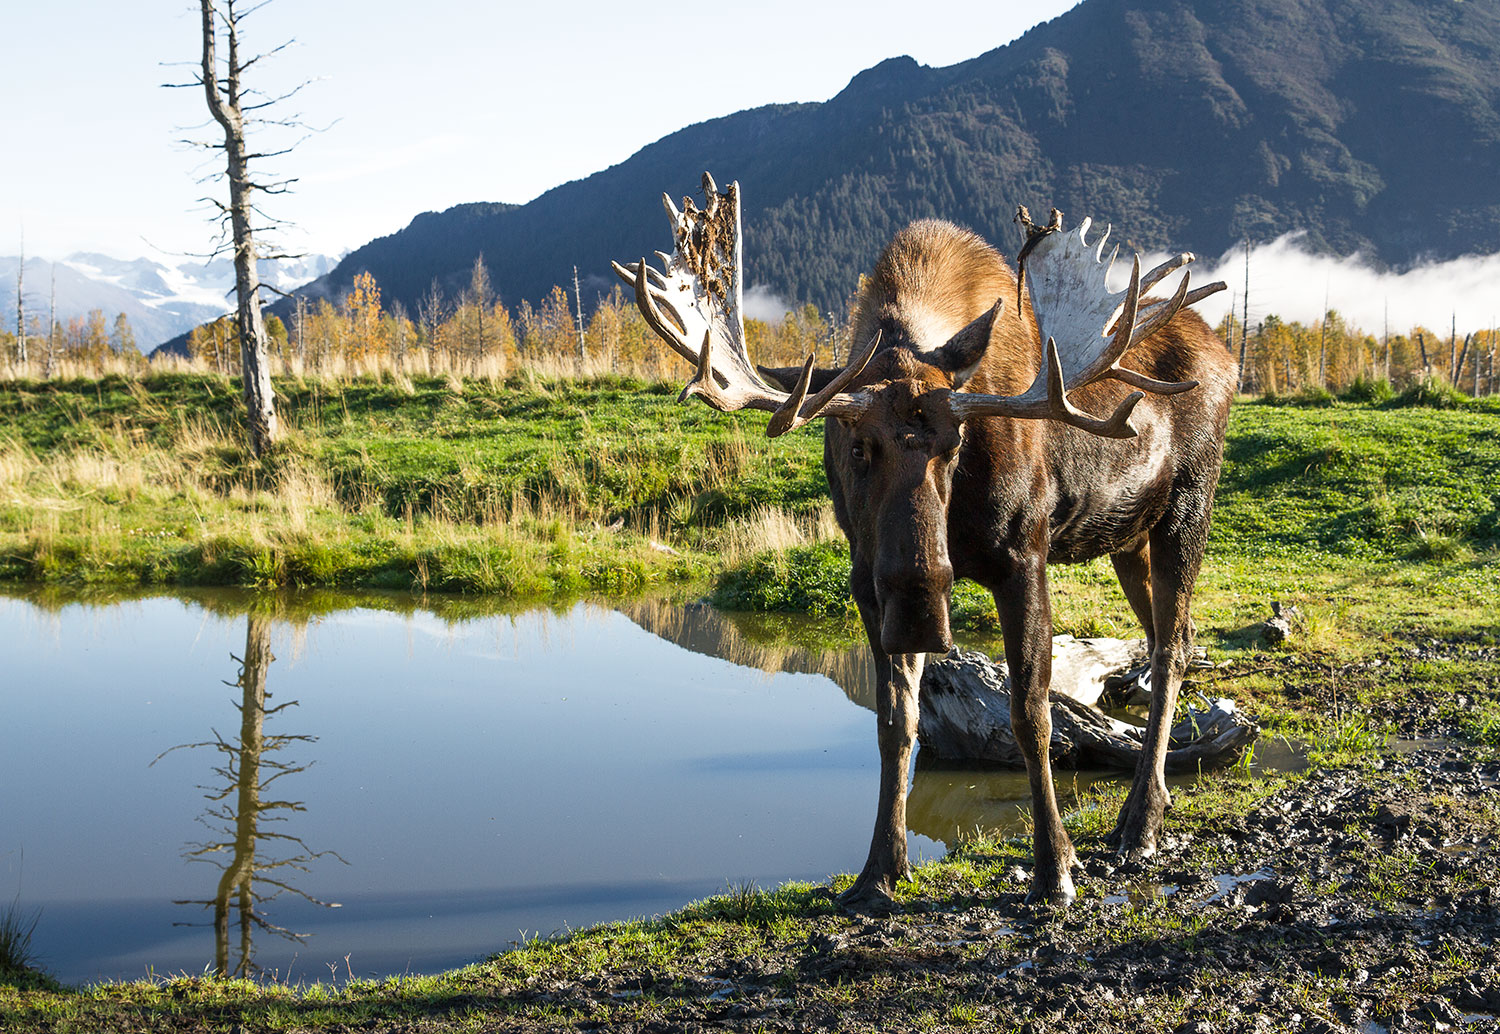 A moose at the Wildlife Conservation Centre near Anchorage. Photo: Madhuri Chowdhury / The Outdoor Journal